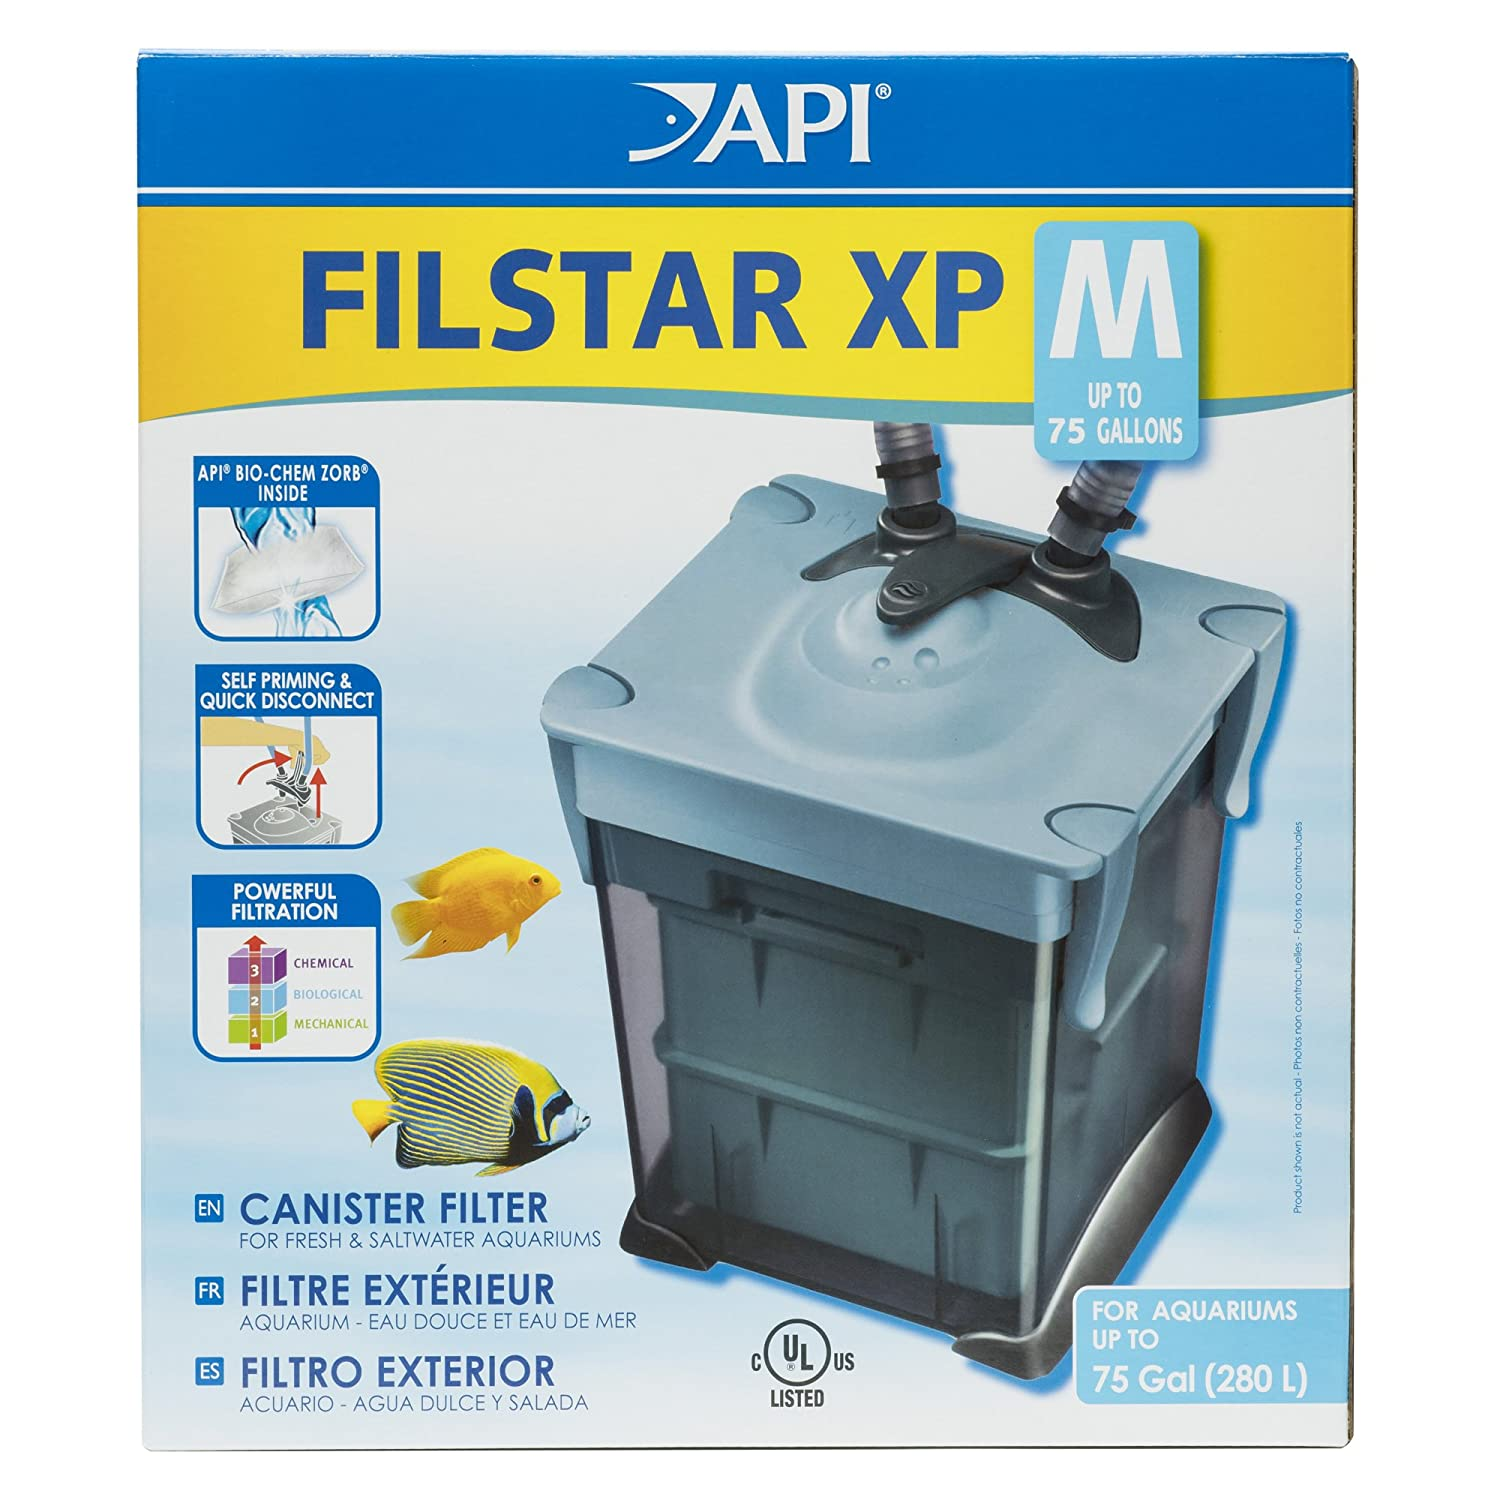 API Filstar XP-M Canister Filter by API B00026Z4KS